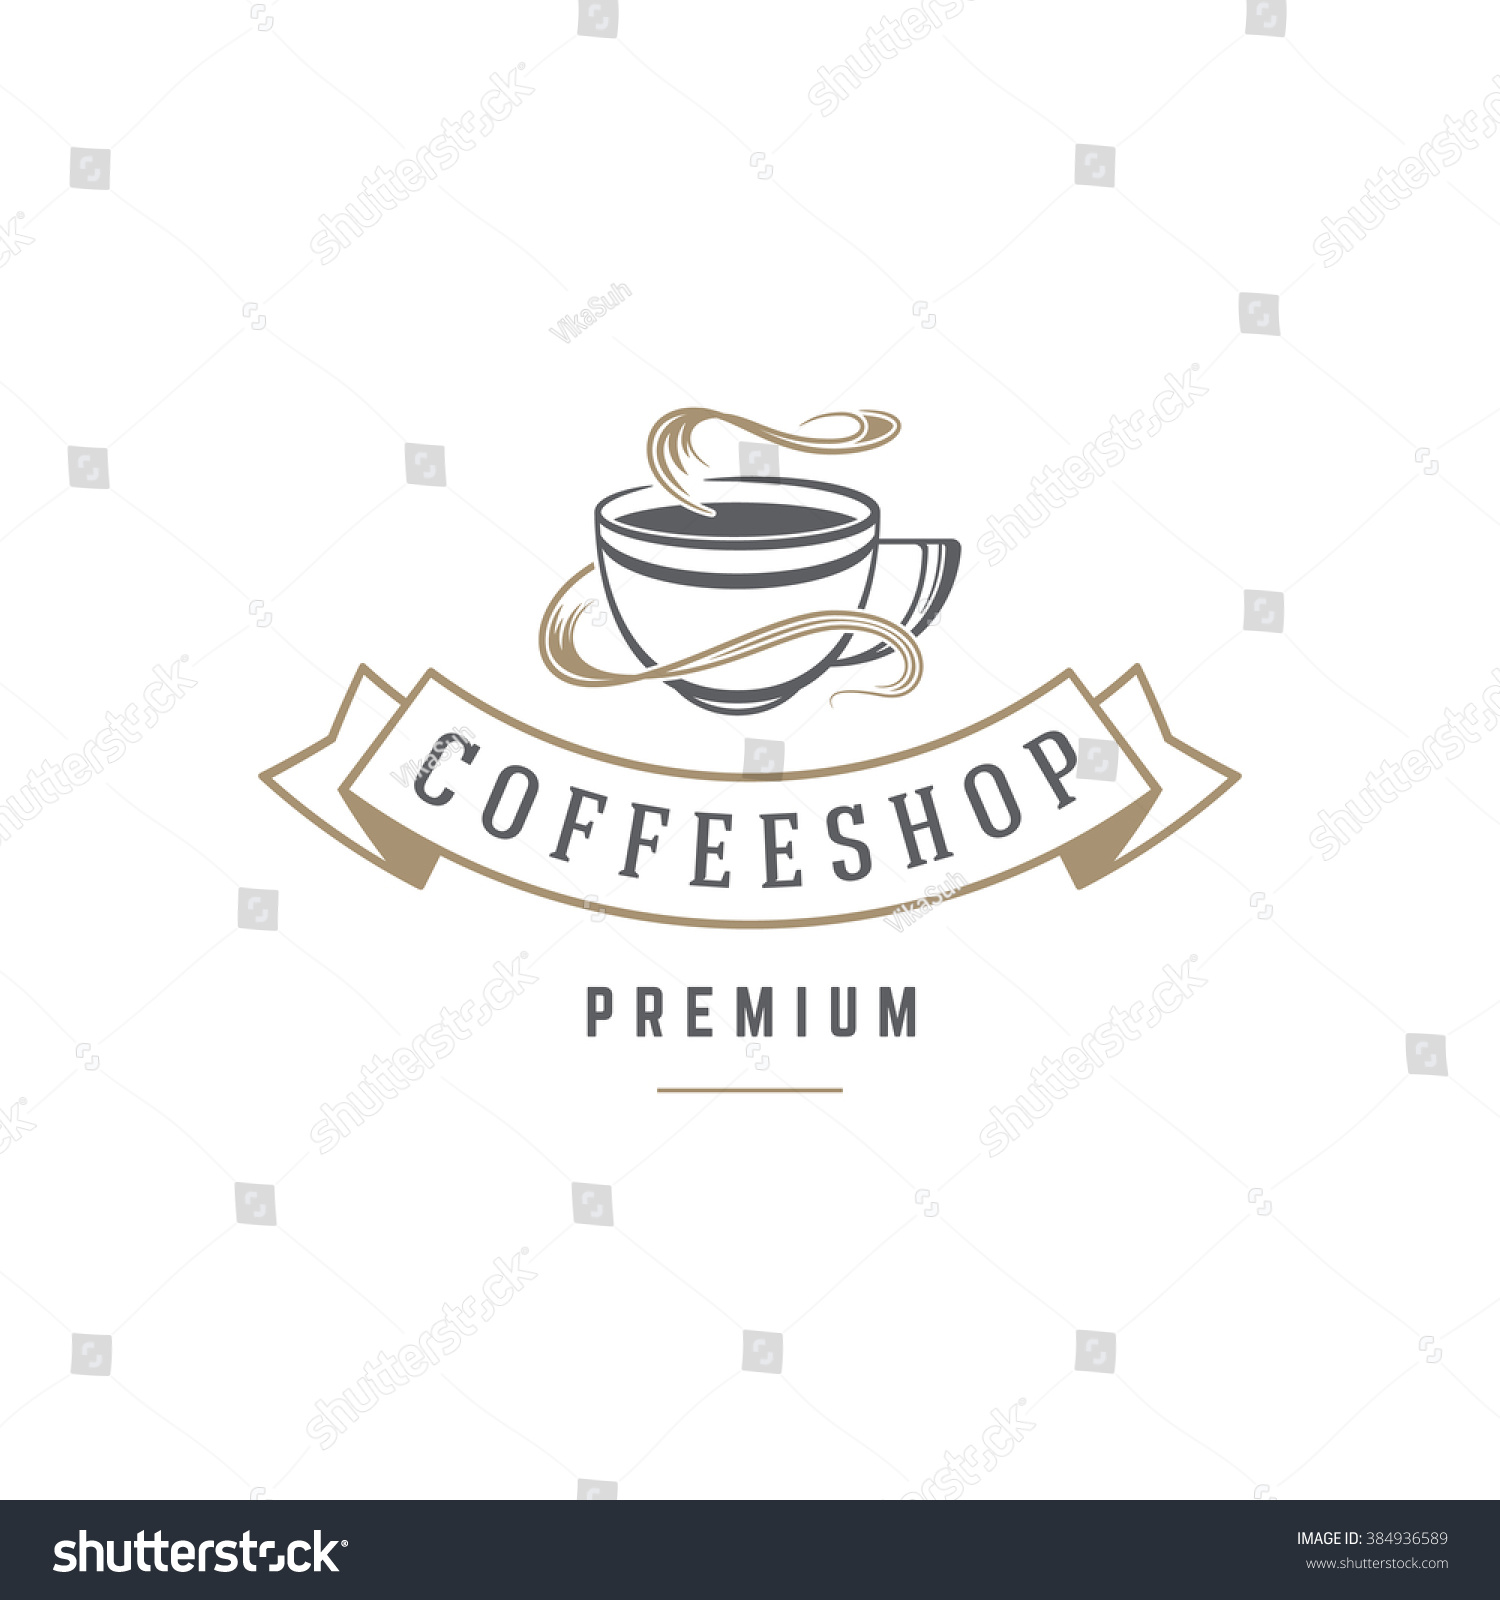 Art logo logo s coffee logo coffee shop coffee design shop logo coffee - Coffee Shop Logo Template Coffee Cup Or Tea Silhouette Isolated On White Background Vector